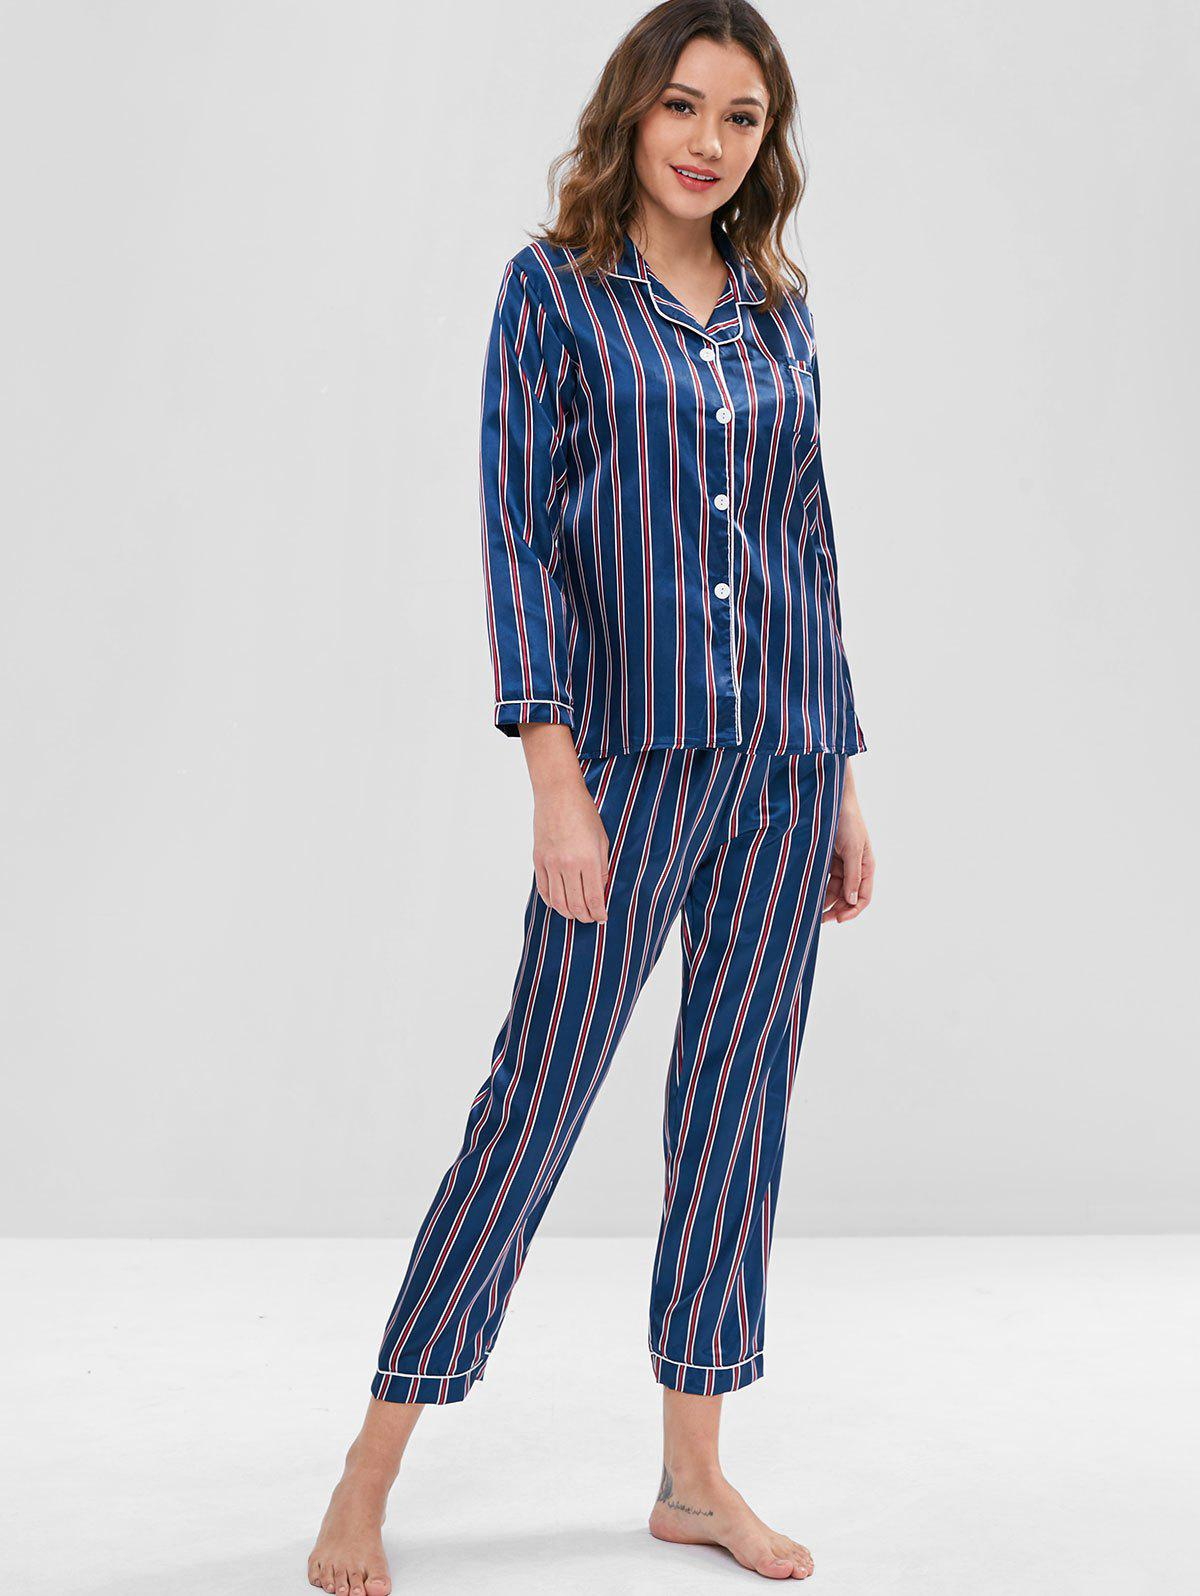 Striped Satin Shirt and Pants Pajama Set